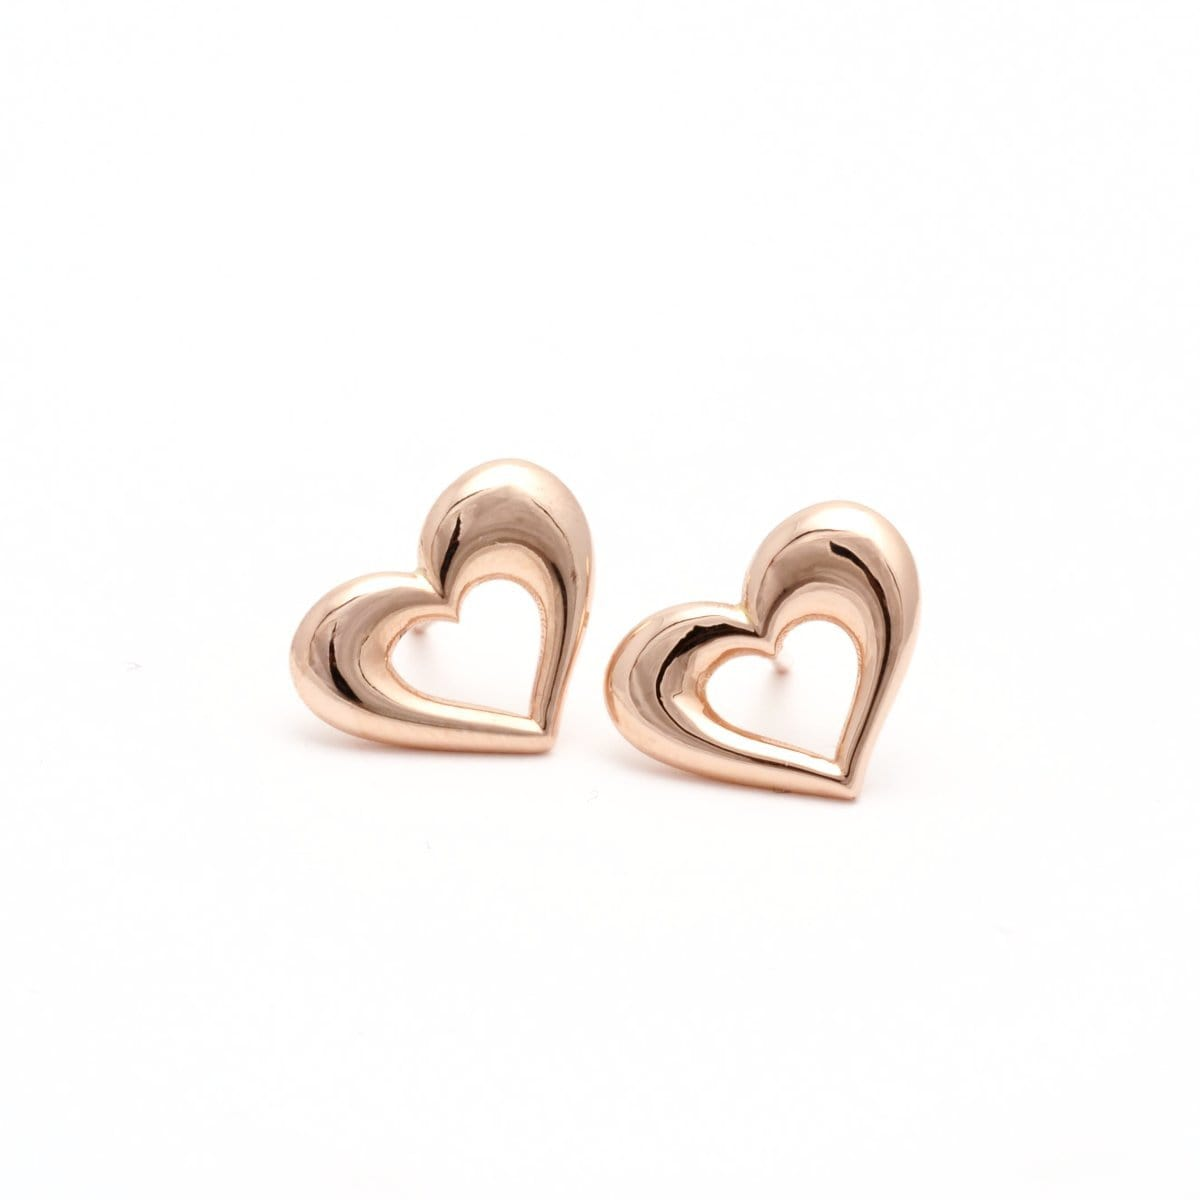 Puffy Heart 18K Rose Gold Earrings - Elizabeth Jane Atelier